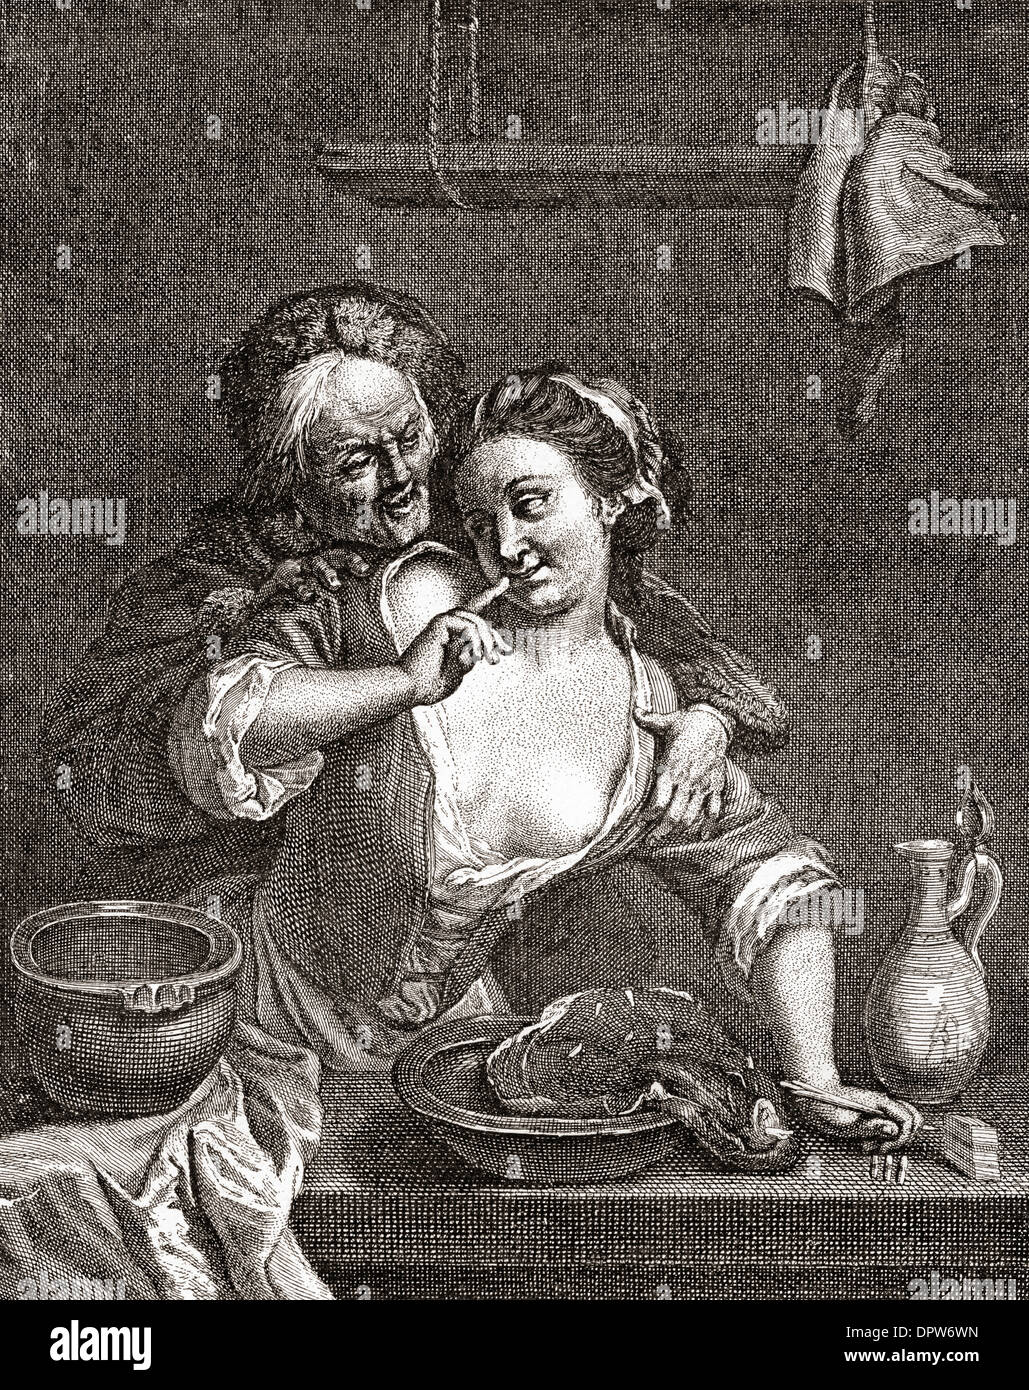 Older man seducing a young woman, after an 18th century work by Jacob van Schuppen. - Stock Image